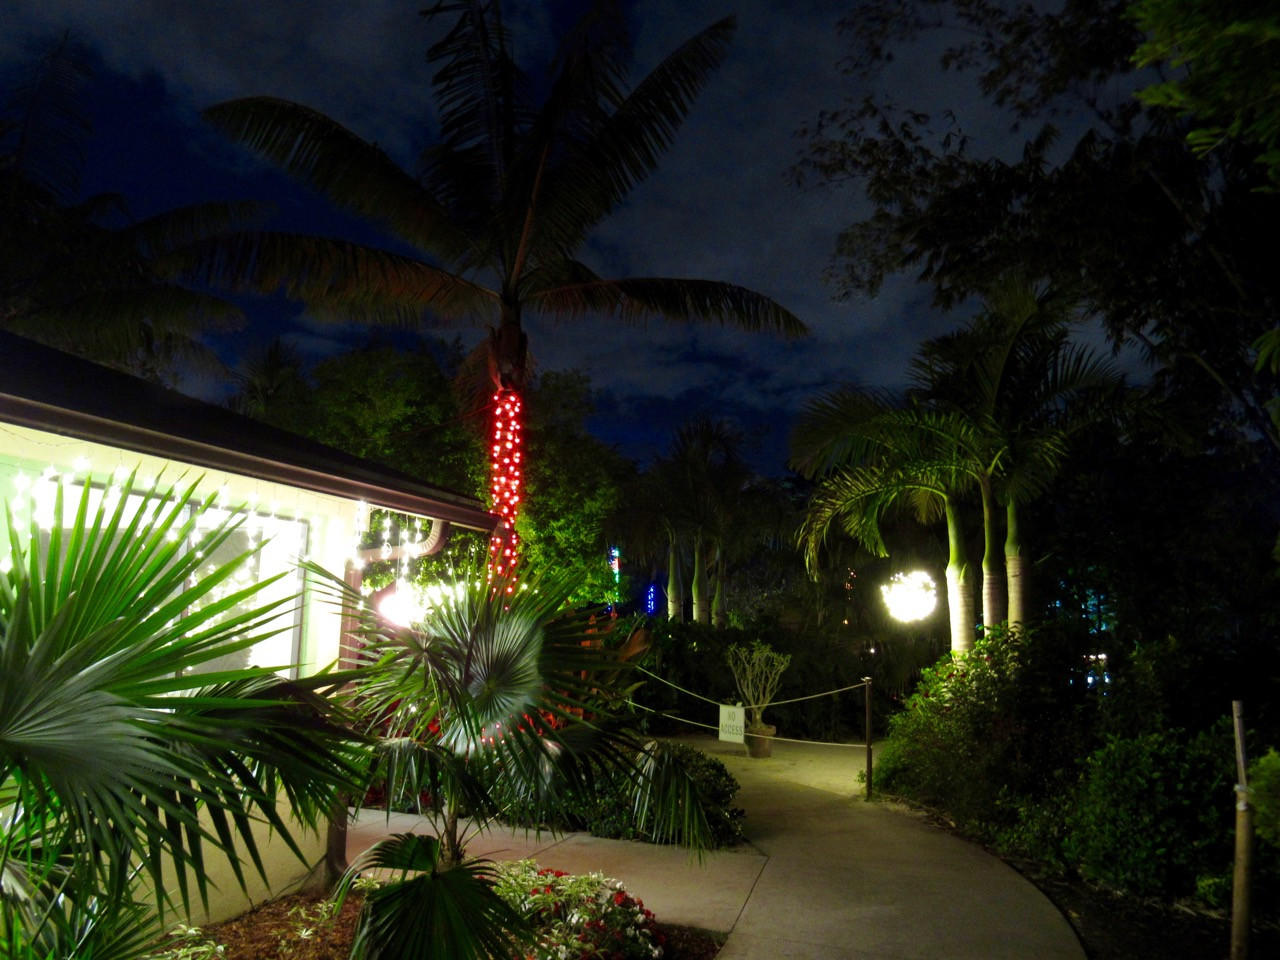 Les illuminations de Noël au Mounts Botanical Garden de West Palm Beach